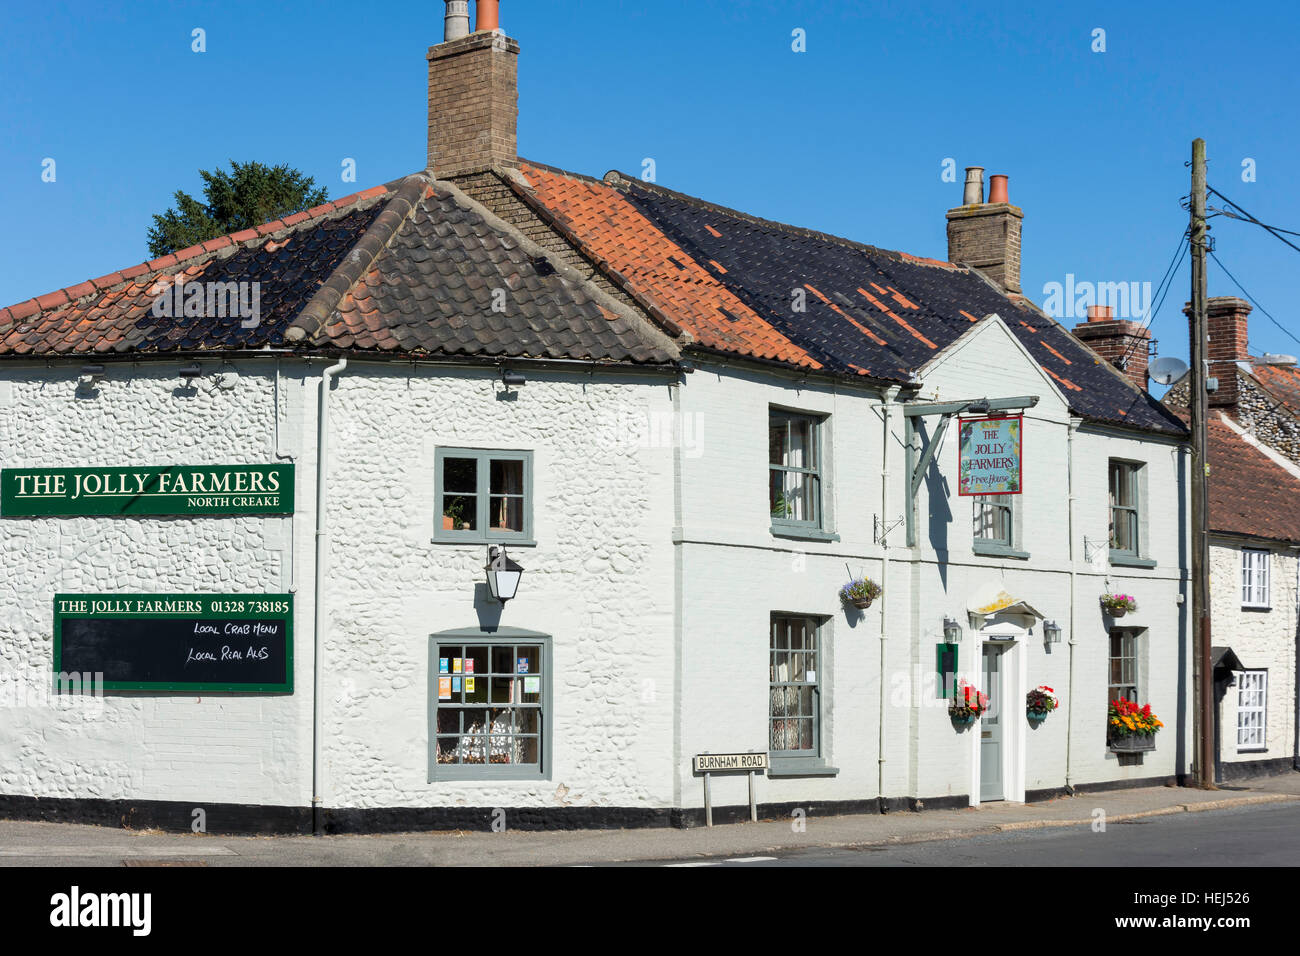 Le Jolly Farmers Pub, Burnham Road, North Creake, Norfolk, Angleterre, Royaume-Uni Photo Stock